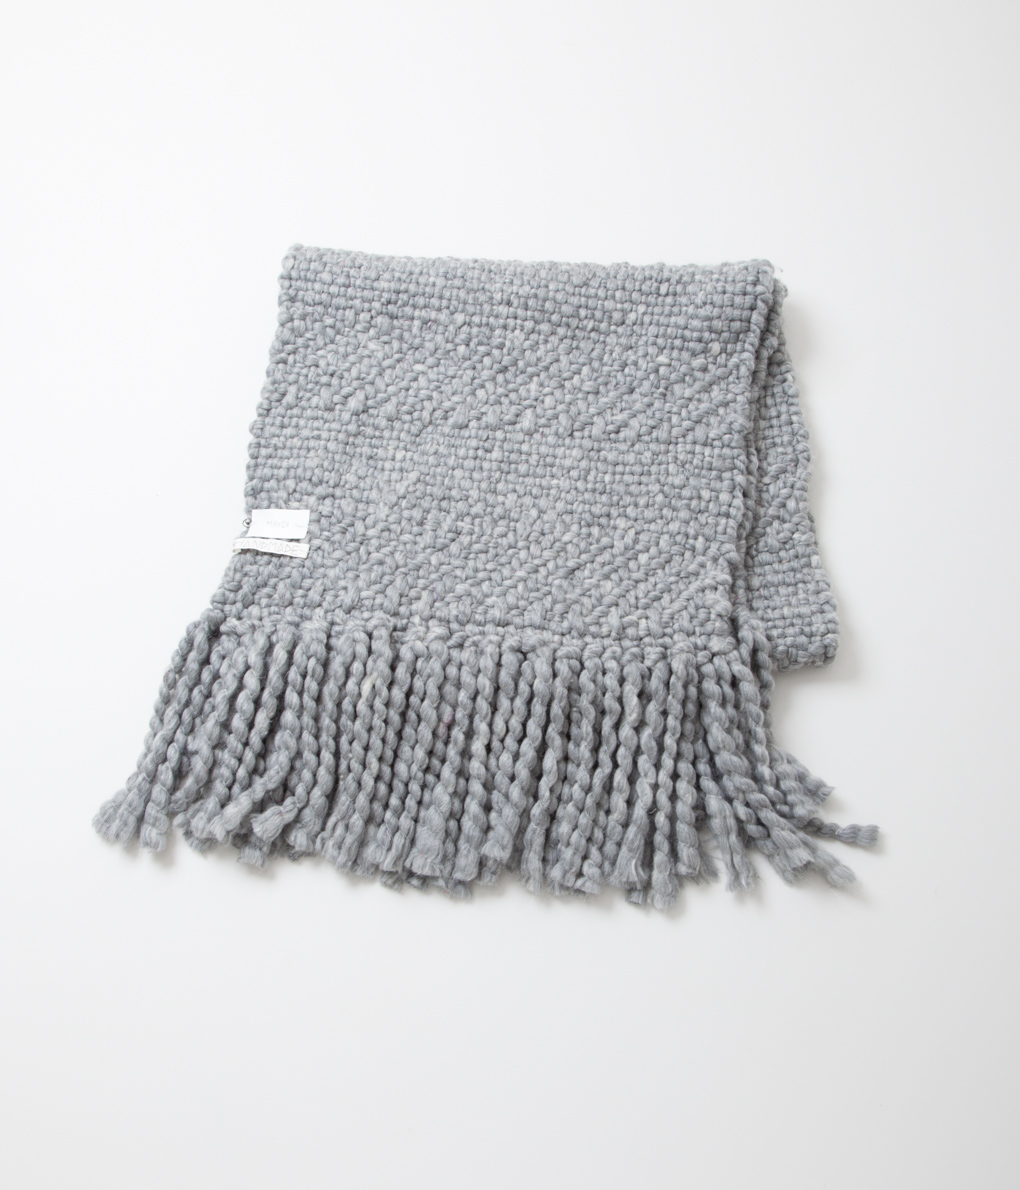 (OUTLET/返品・交換不可)Maydi マイディ Long scarf woven in hand-loom ローゲージニットストール